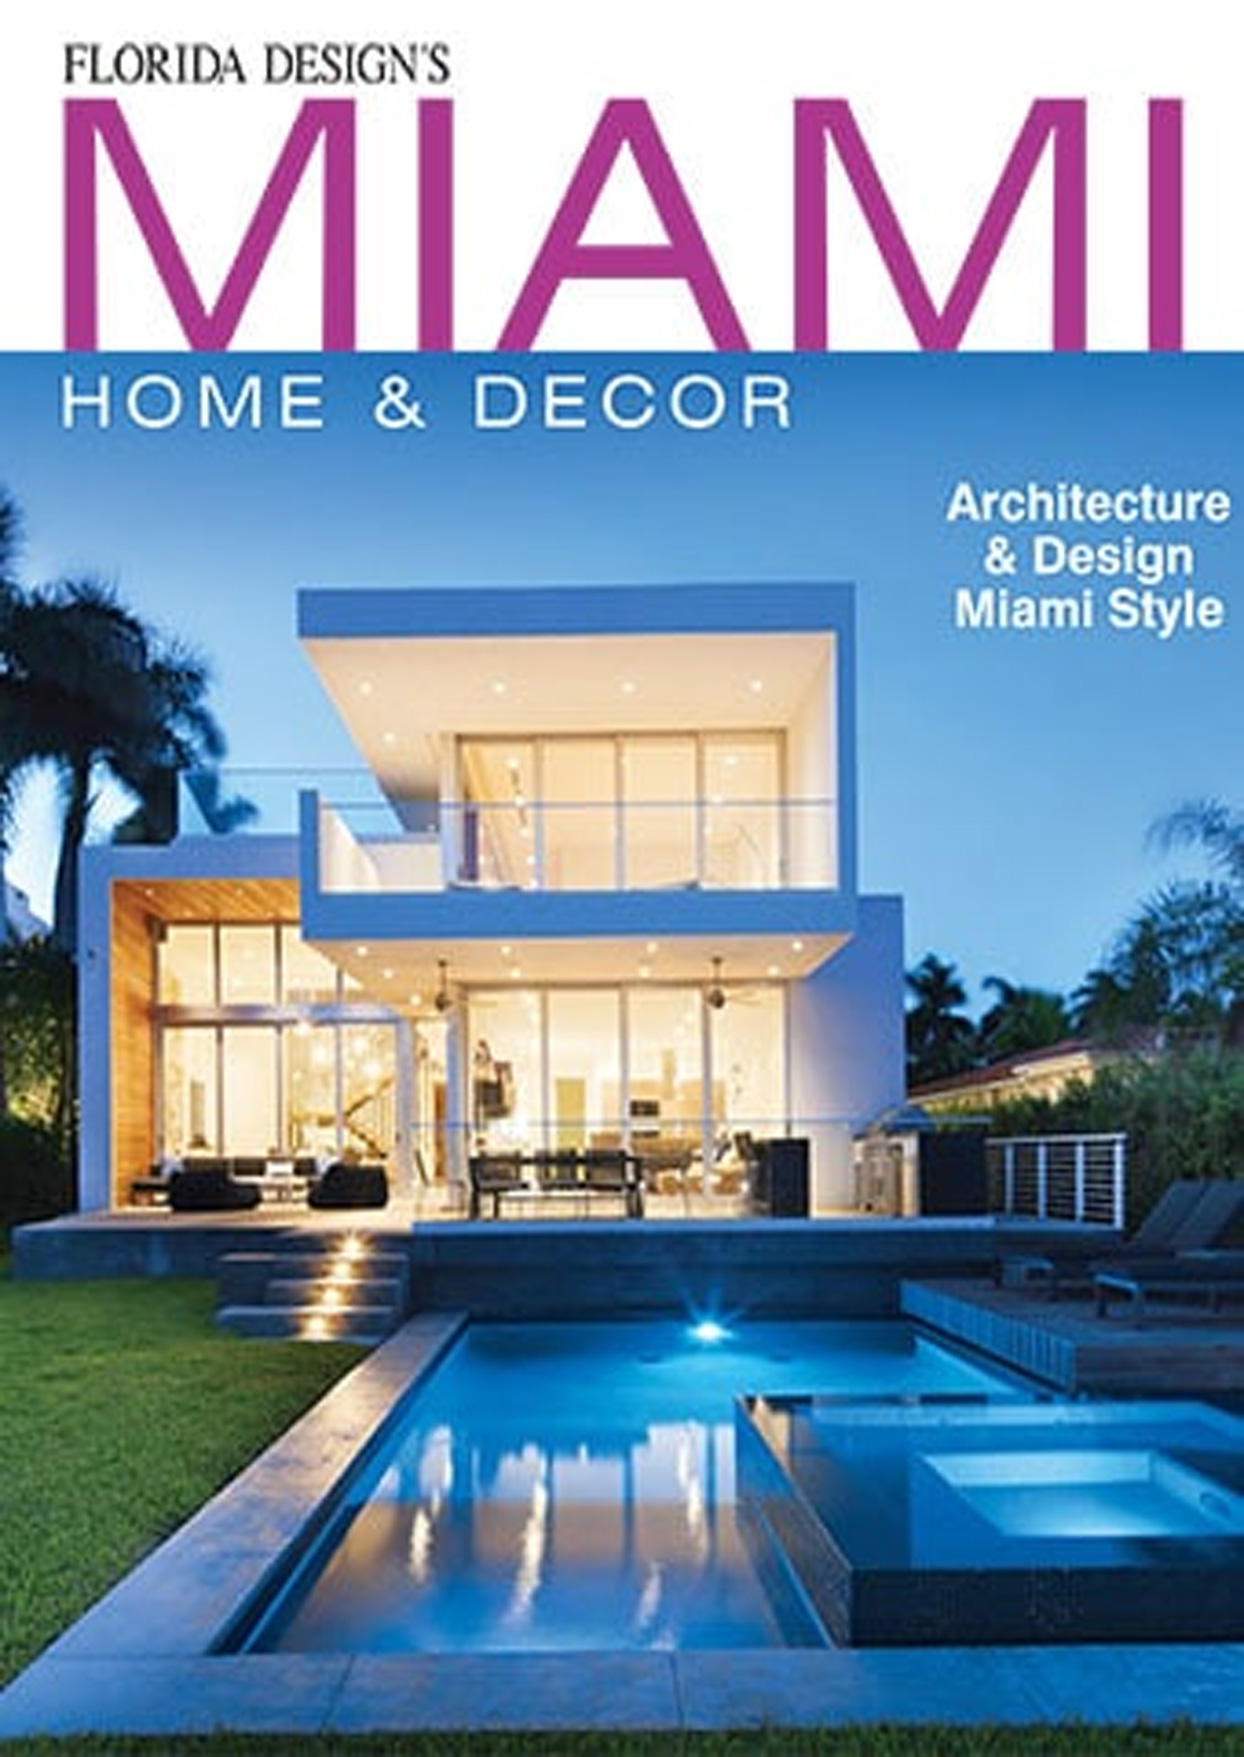 florida designs miami home and decor